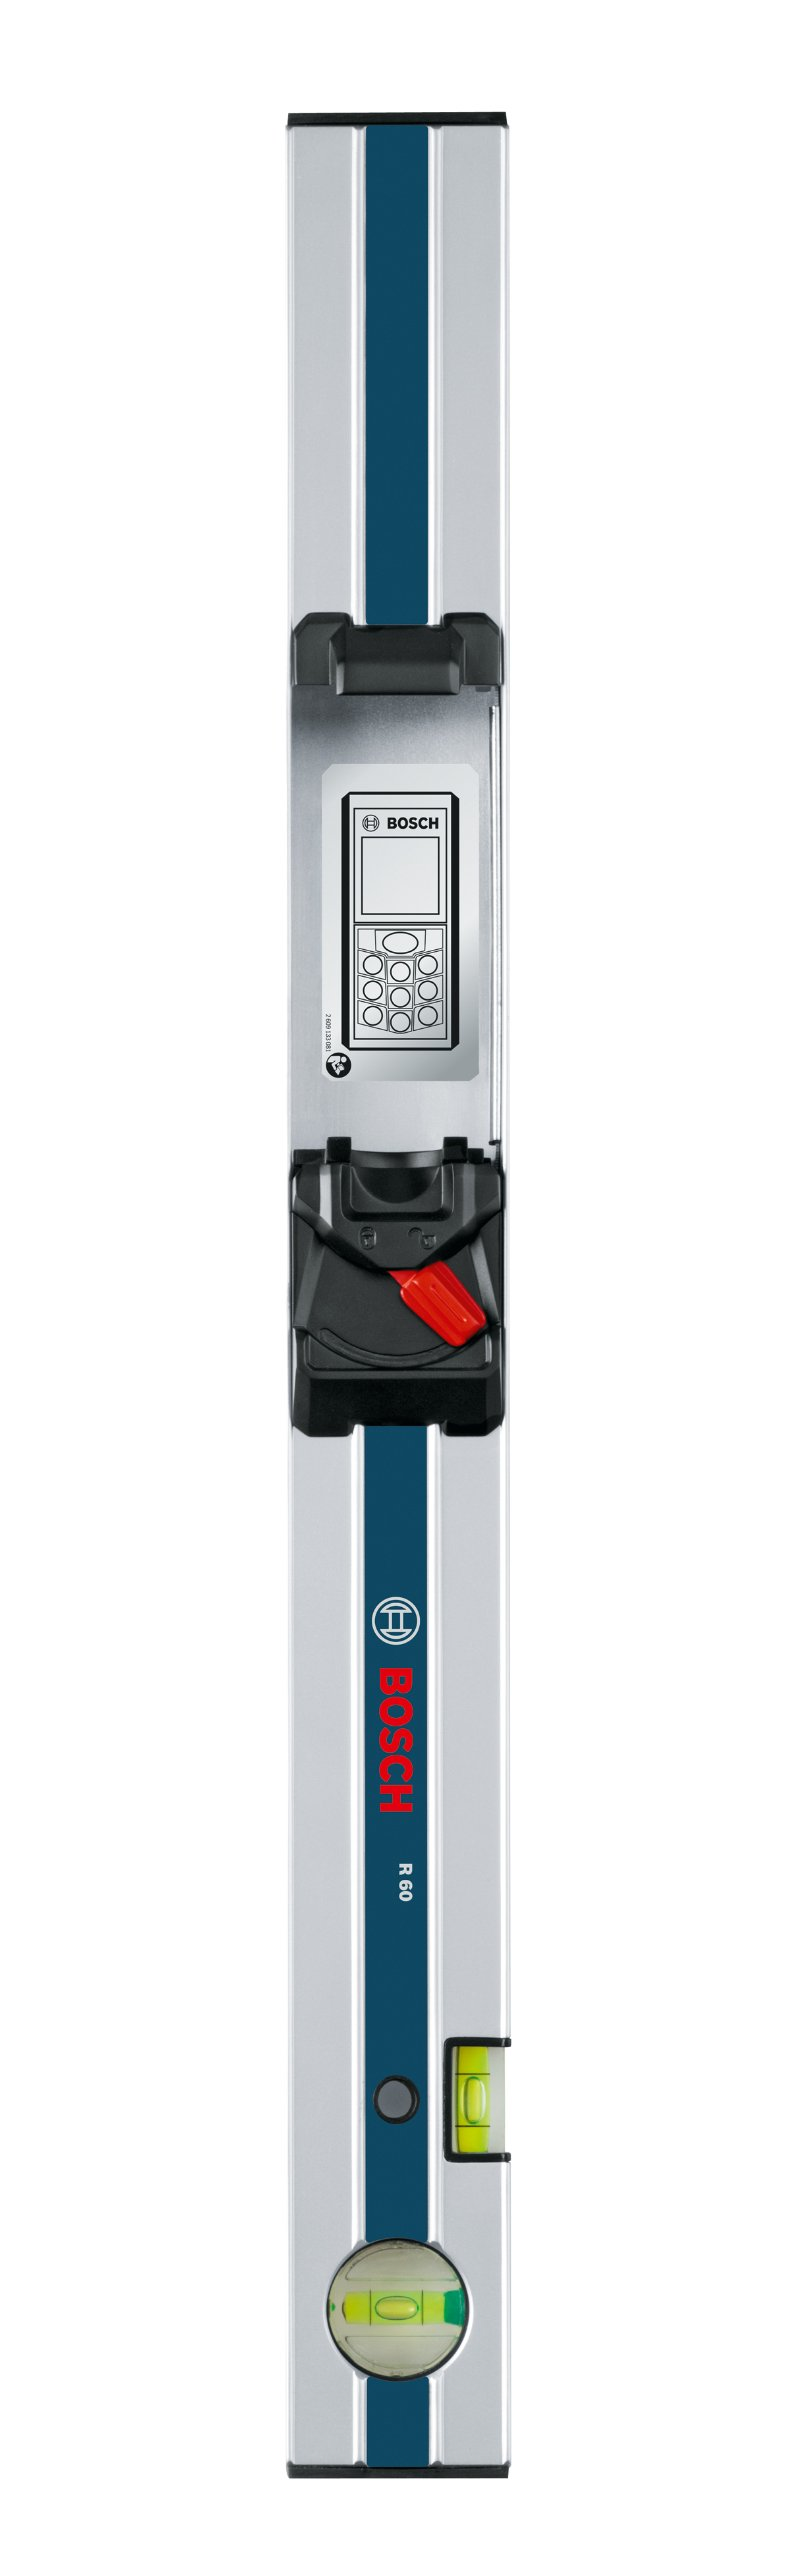 Bosch R60 Measuring Rail 600mm - For use with GLM 80 inclinometer function